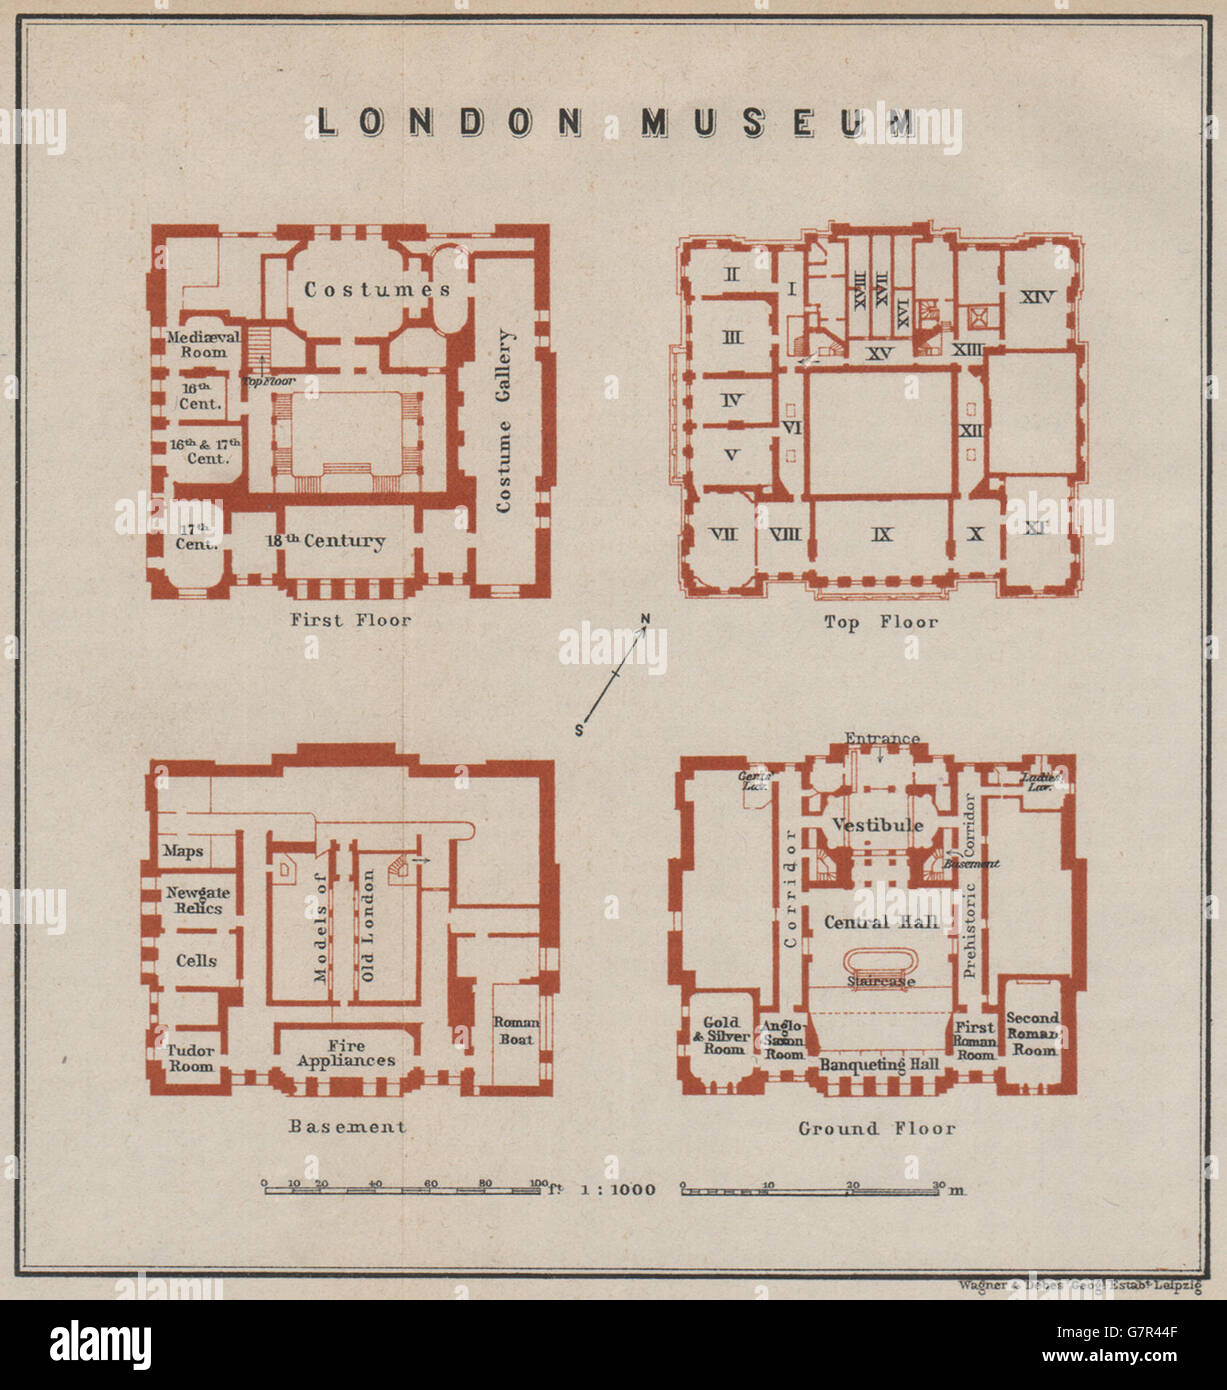 LONDON MUSEUM floor plan. Lancaster House, St James's.Museum ... on old victorian house floor plans, 19th century mansion floor plans, 18 century victorian house plans,